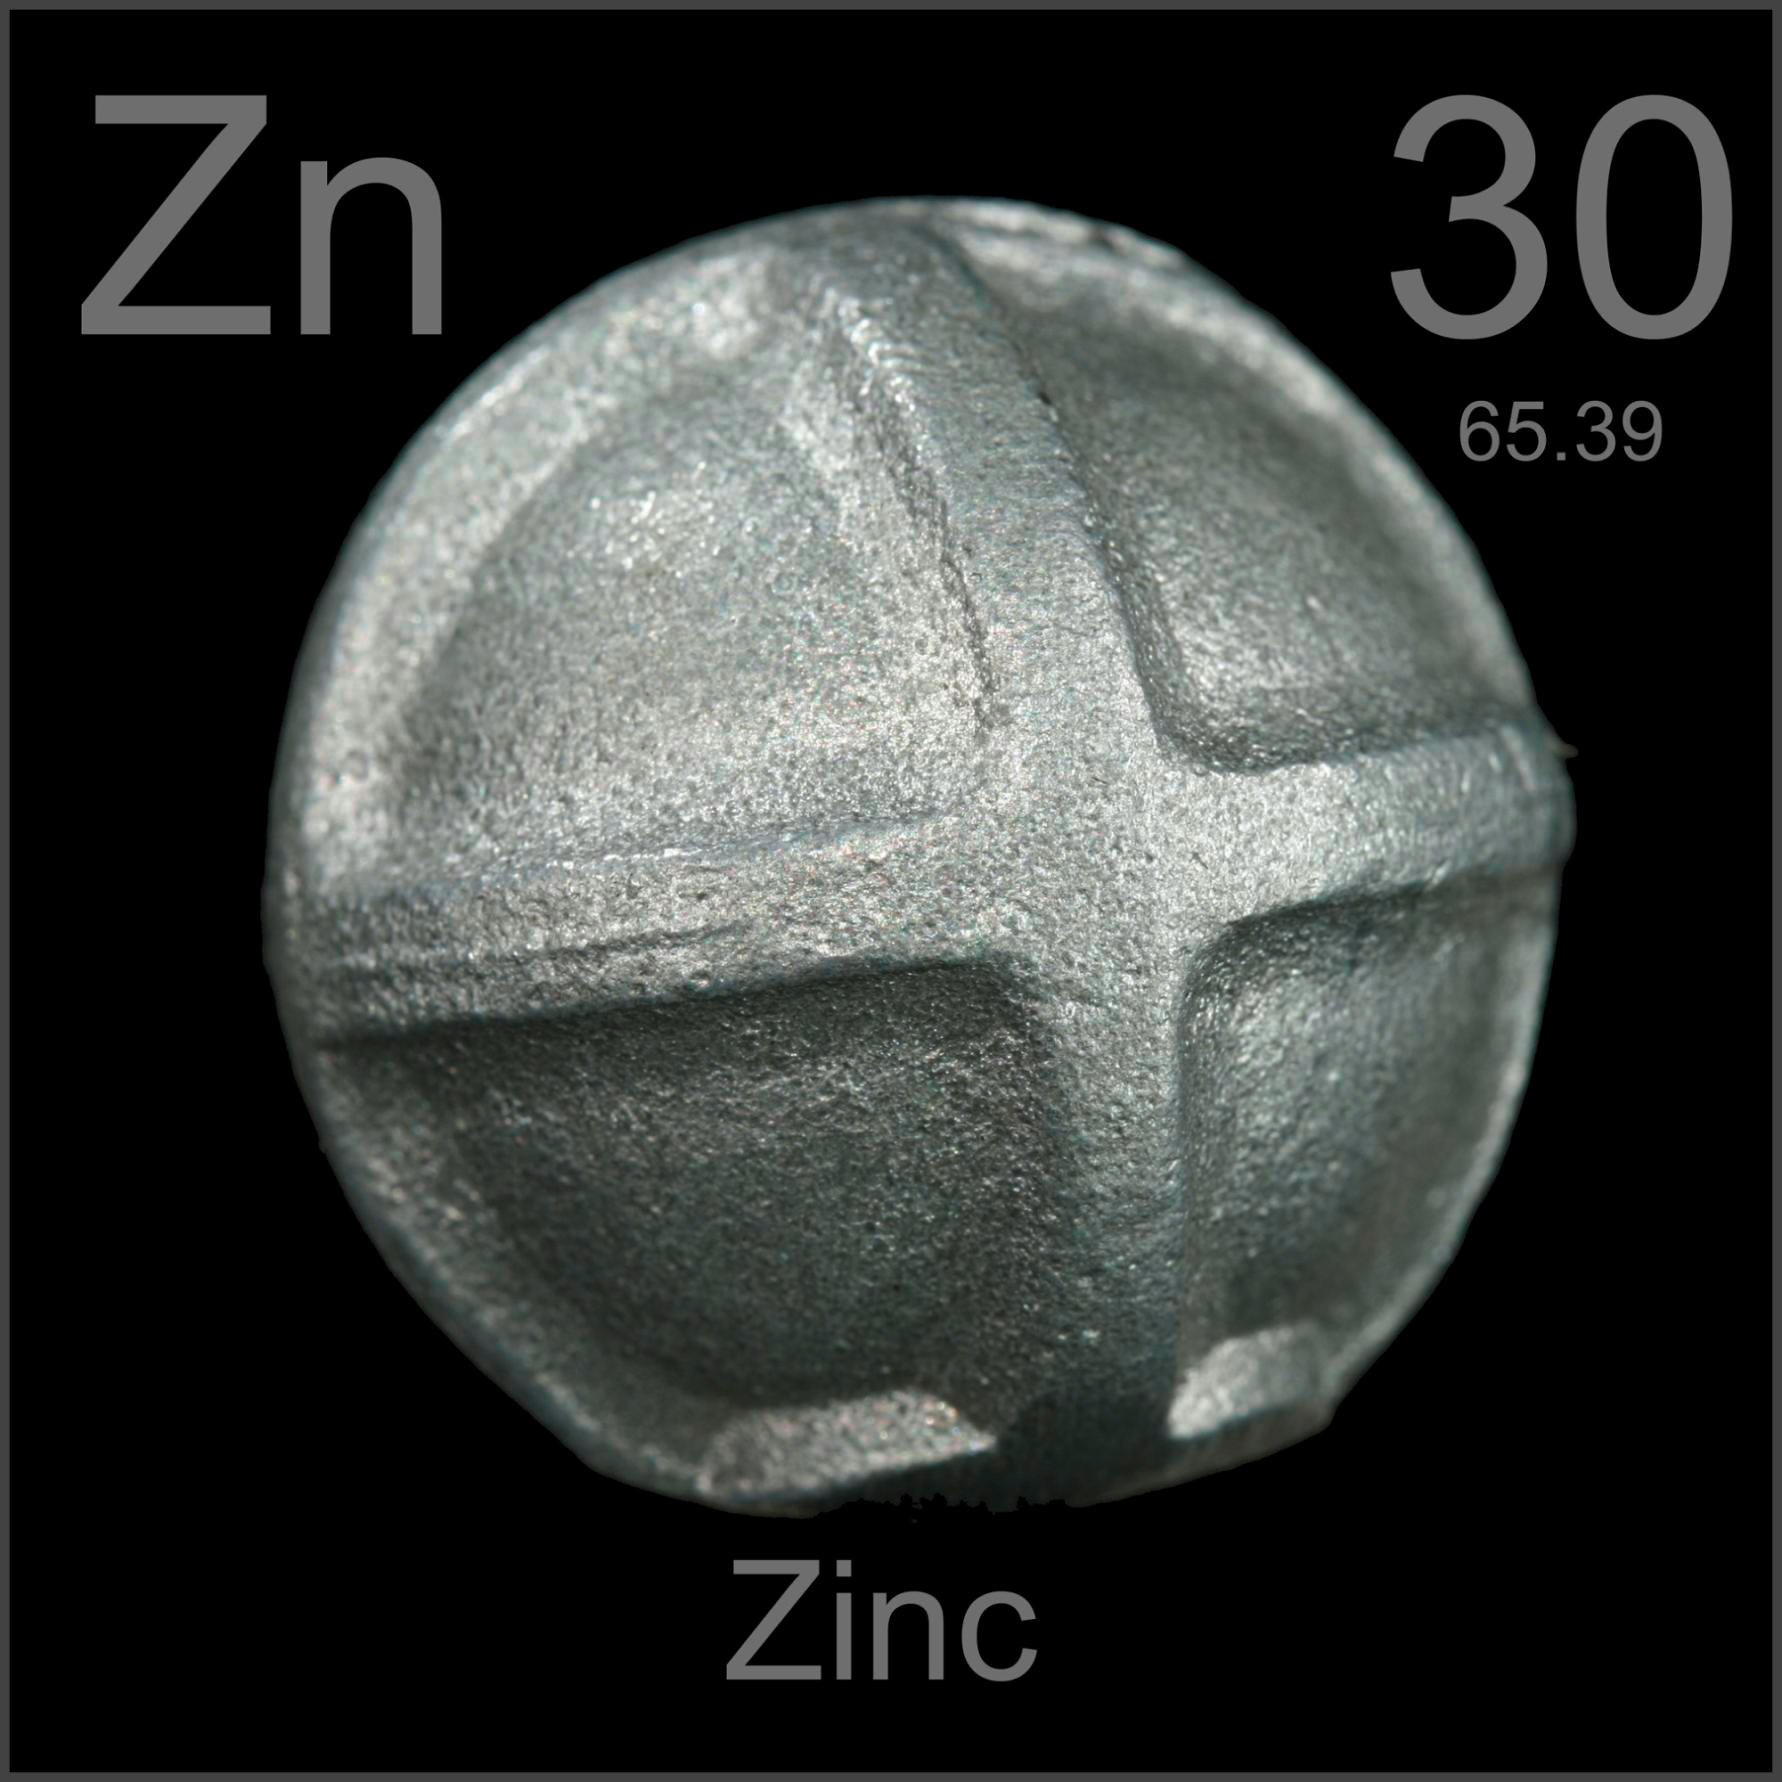 Facts pictures stories about the element zinc in the periodic table zinc oil tank sacrificial anodes gamestrikefo Image collections